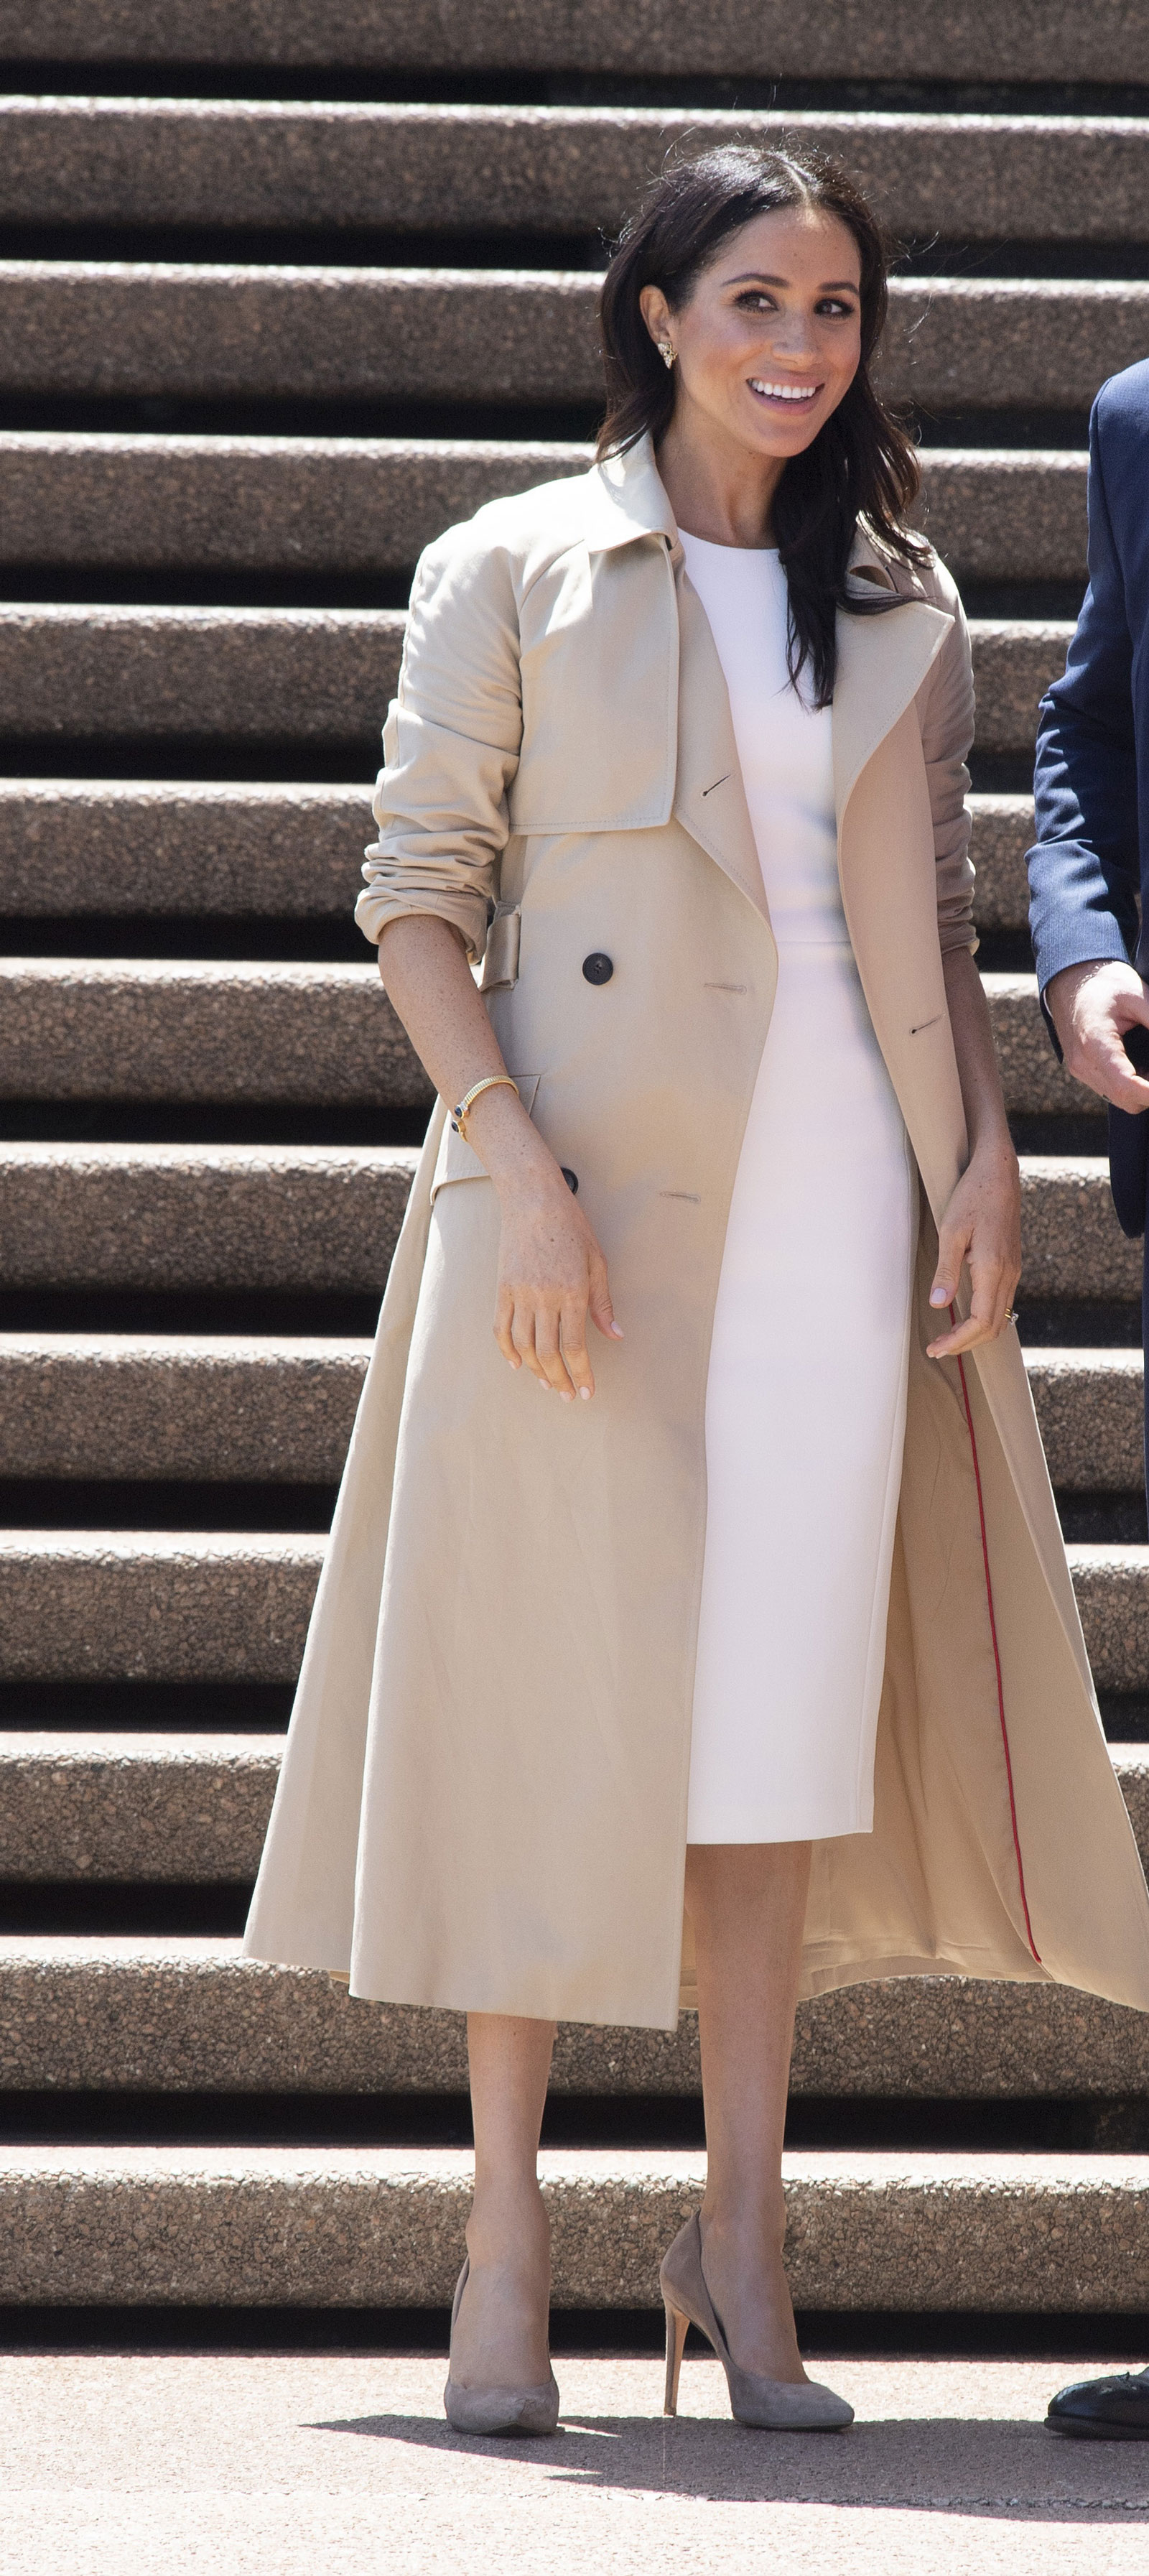 Meghan Markle Trench Coat and Sheath Dress